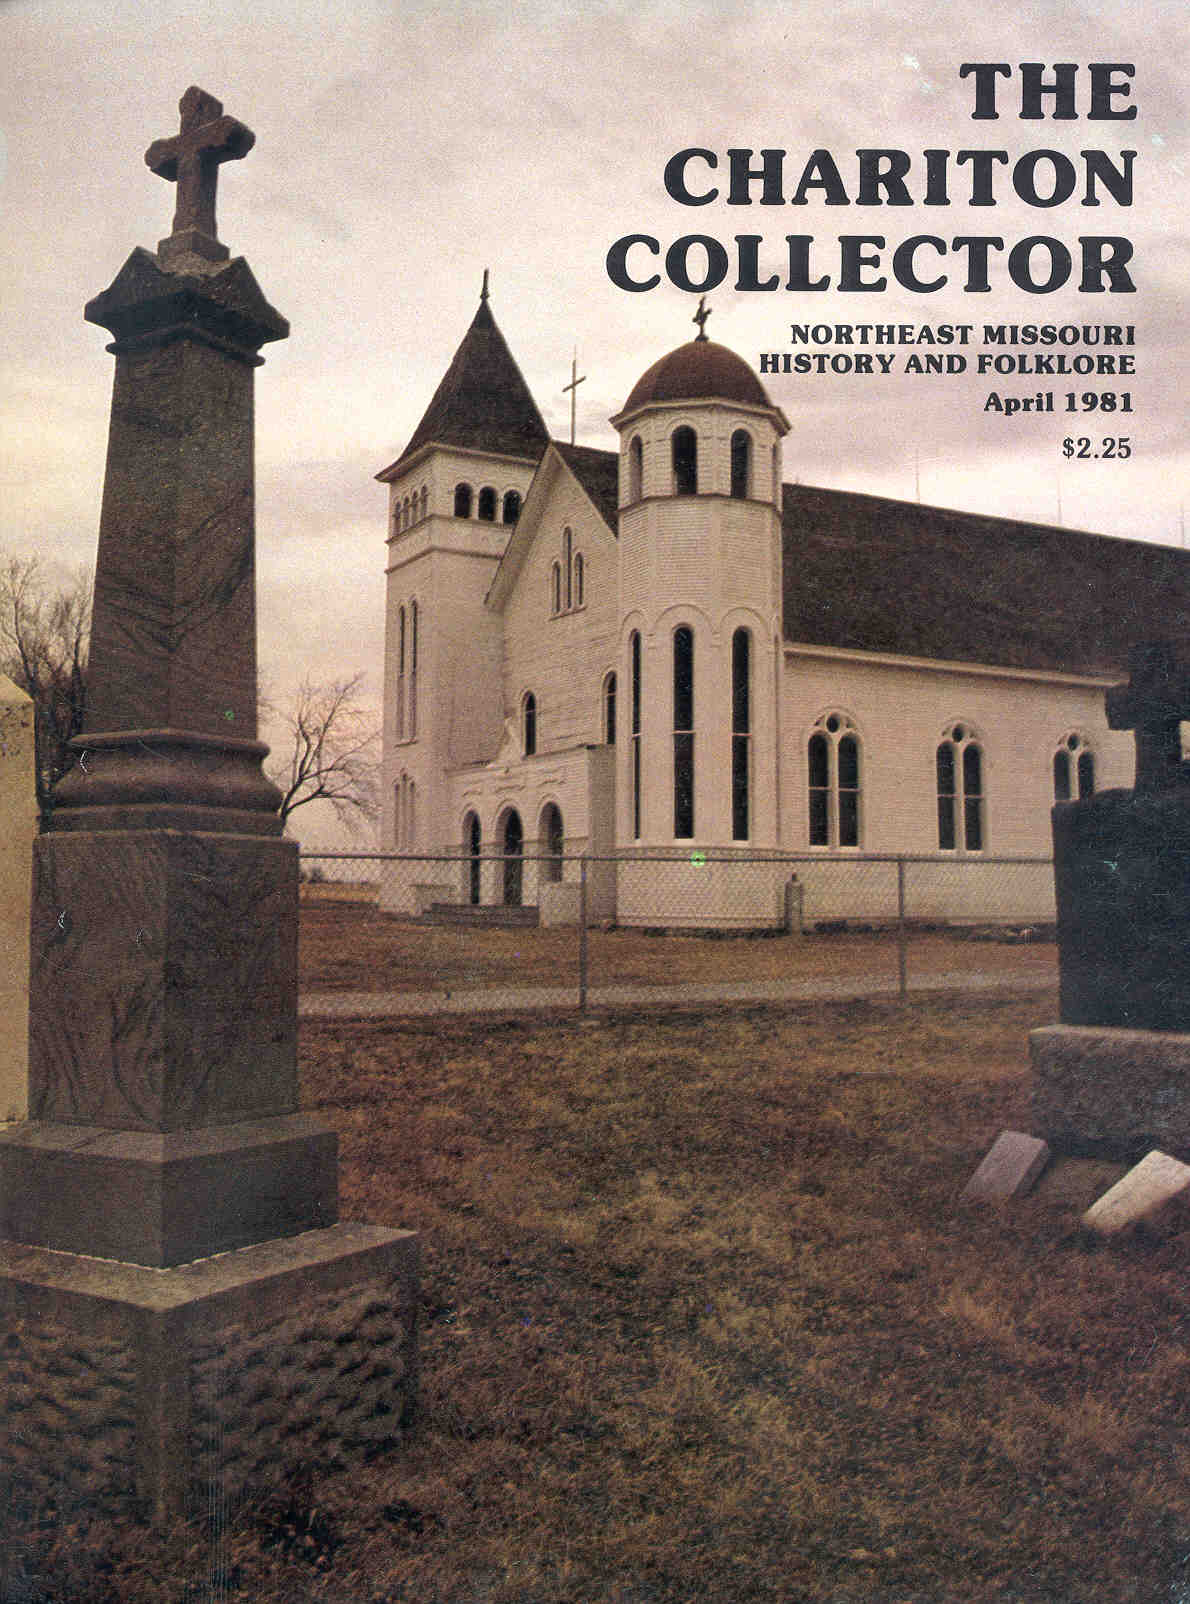 The Chariton Collector